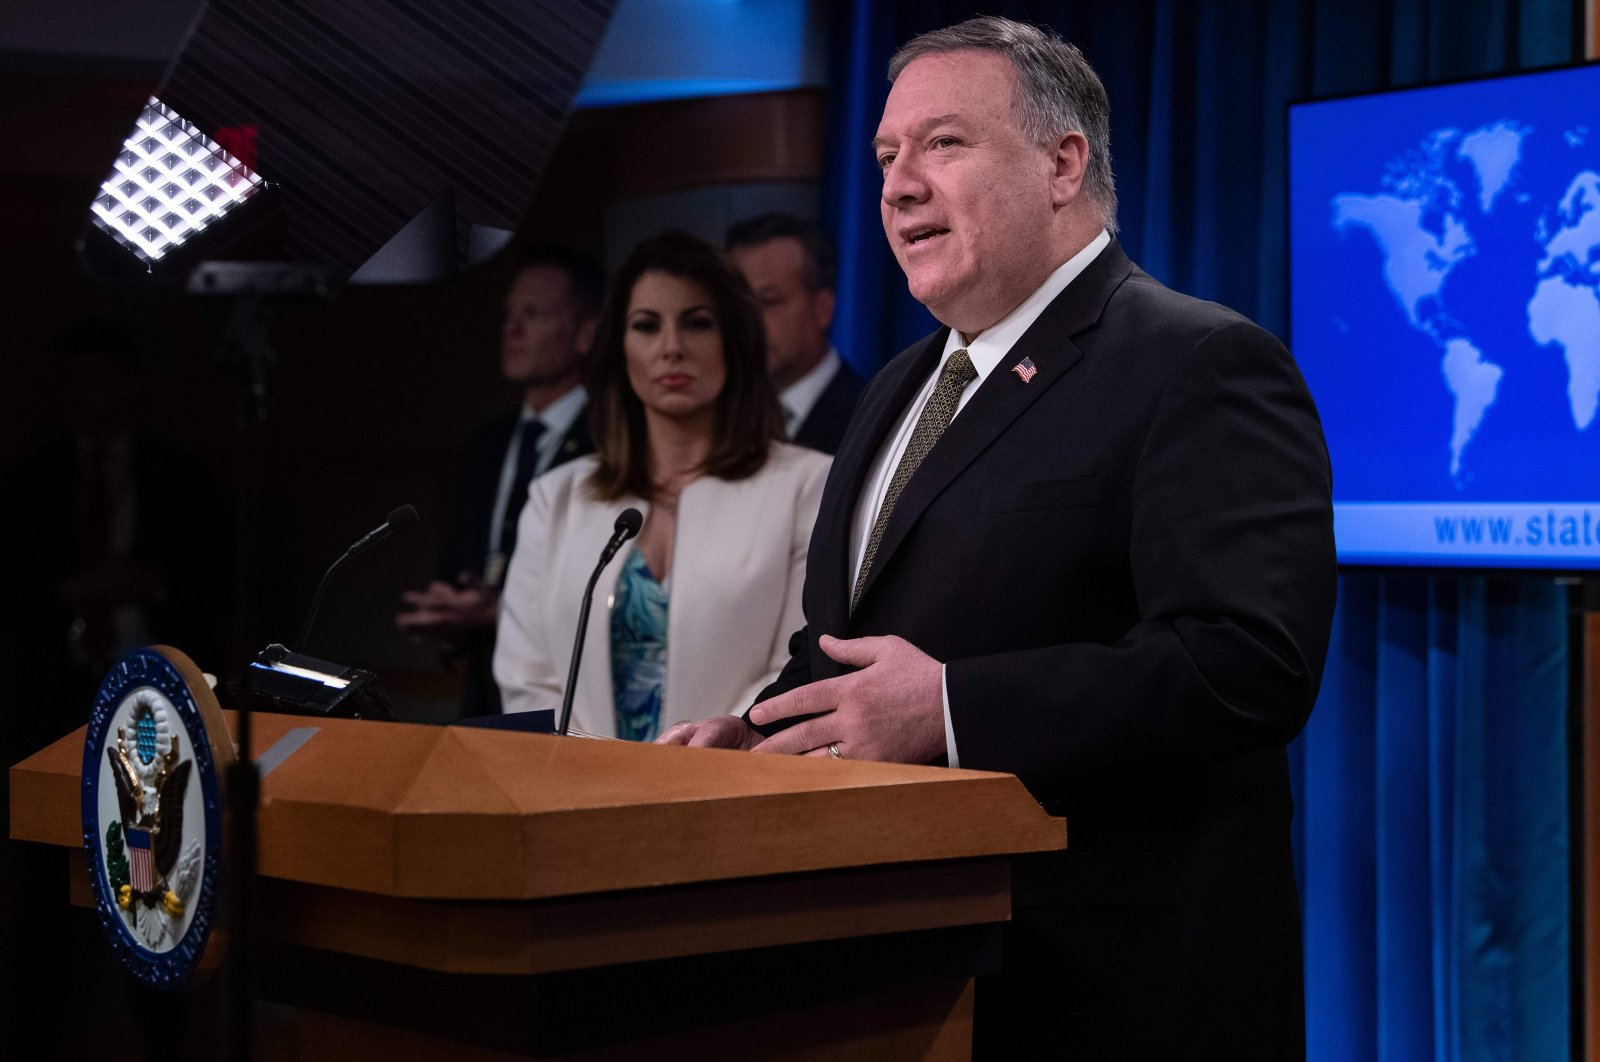 U.S. Secretary of State Mike Pompeo speaks at a press briefing at the State Department in Washington, DC, on April 22, 2020. (AFP Photo)